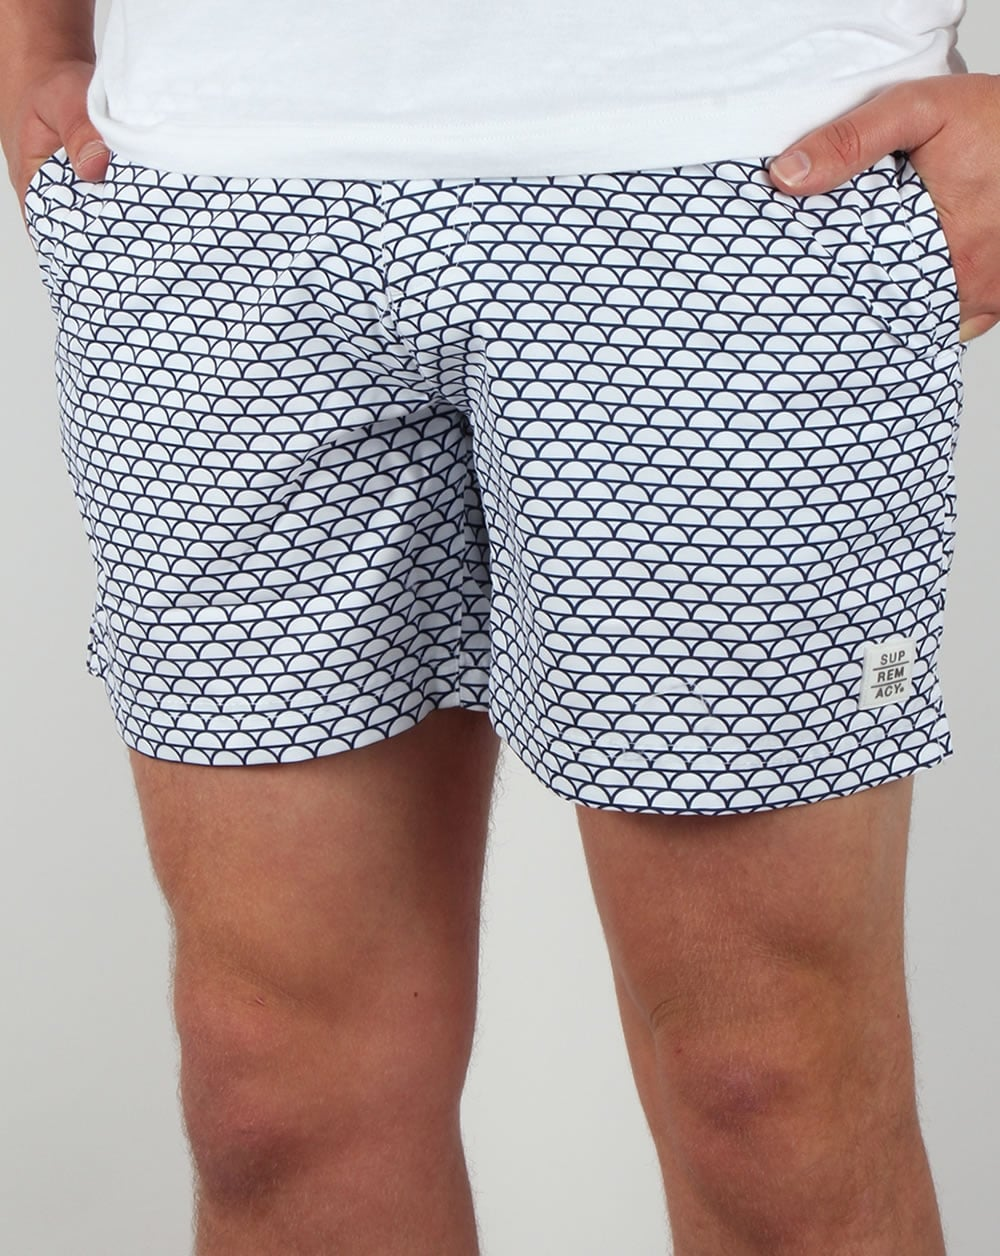 a28bd825d4 Supremacy Reef Tailored Swim Shorts White,beach,swimmers,pool,mens